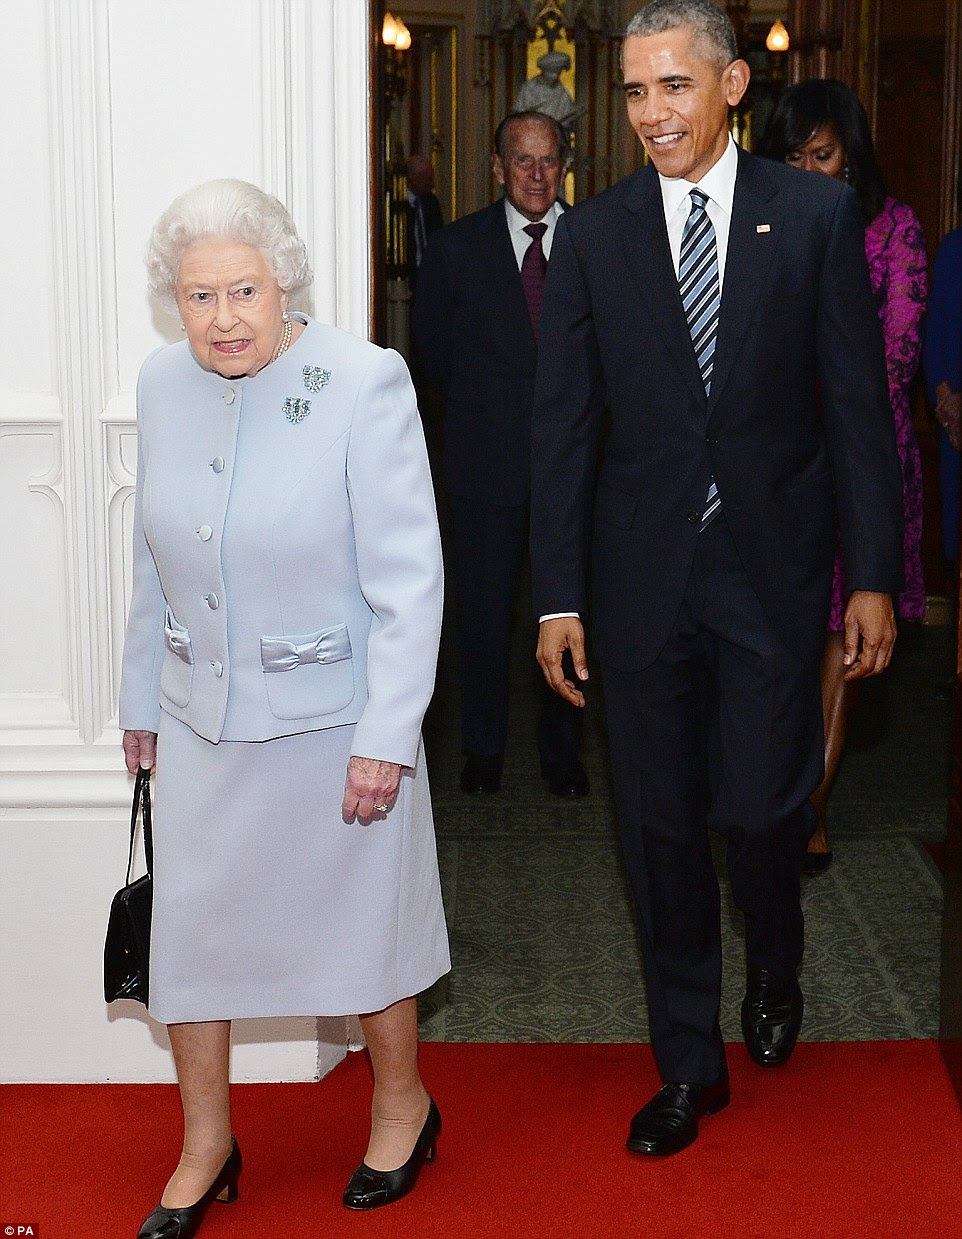 Going in: Mr Obama and the Queen entering the Oak Room at the castle to pose for photos before their lunch